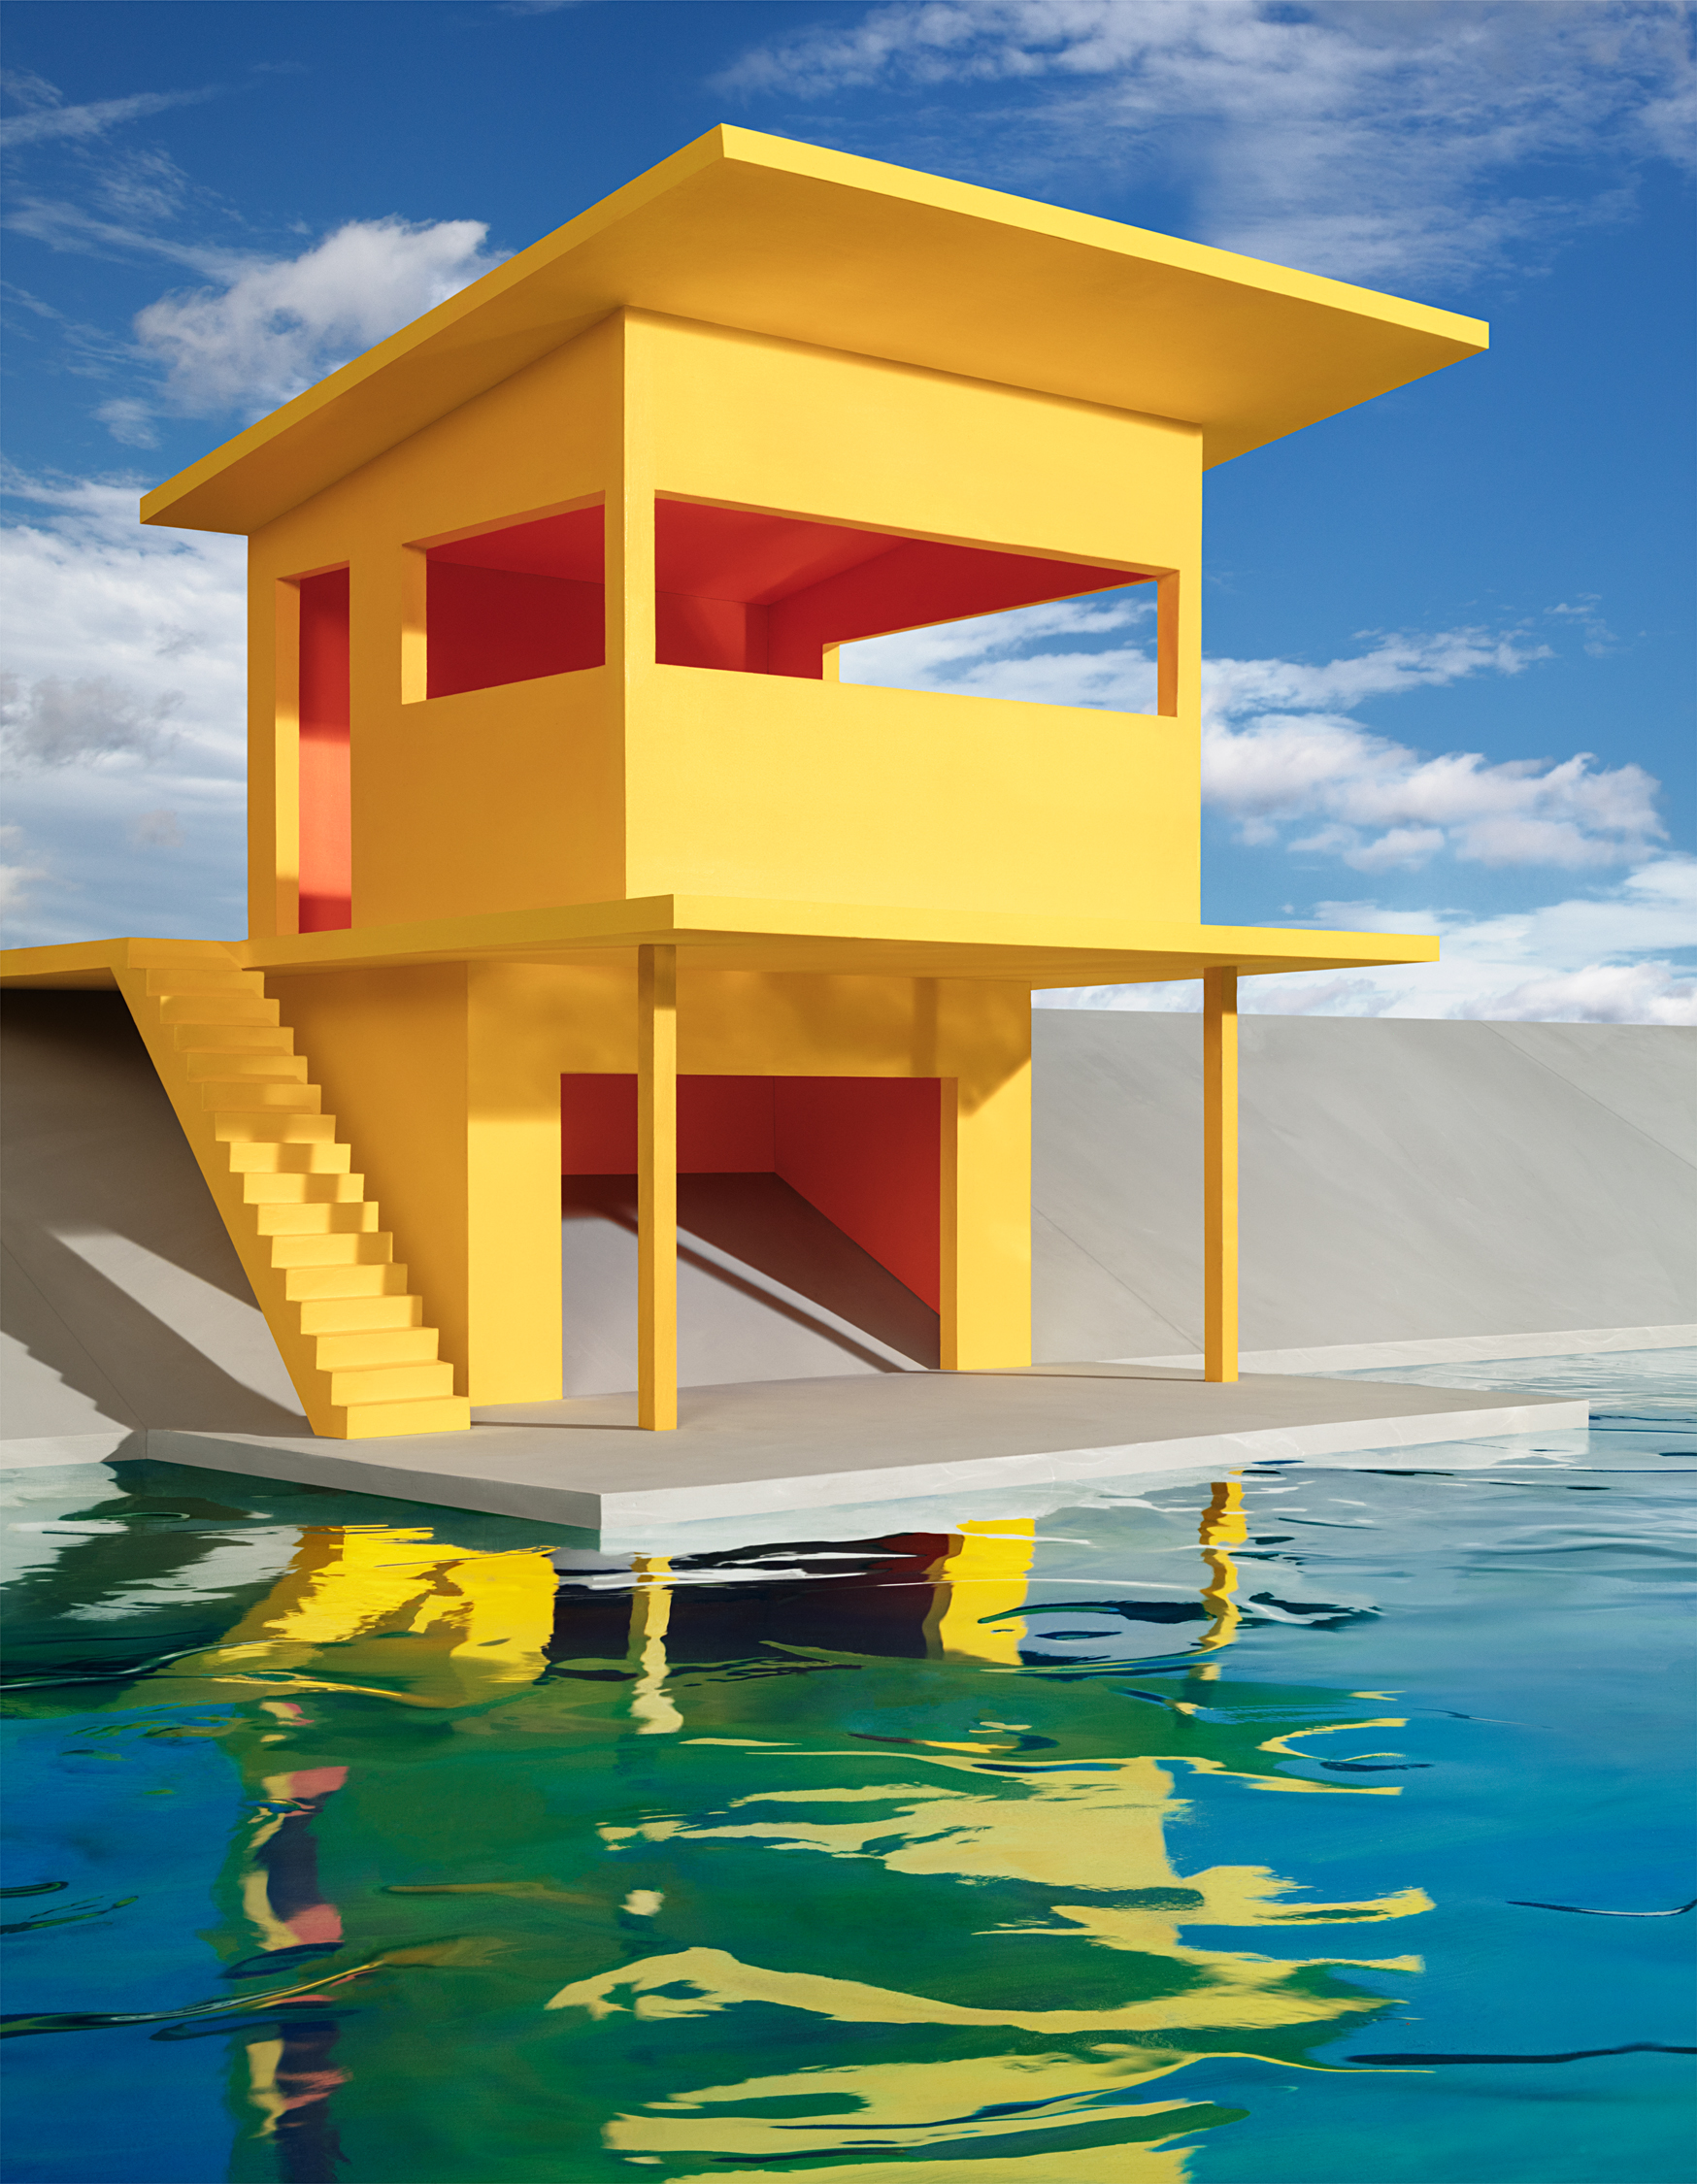 Bright Yellow House on Water, 2018